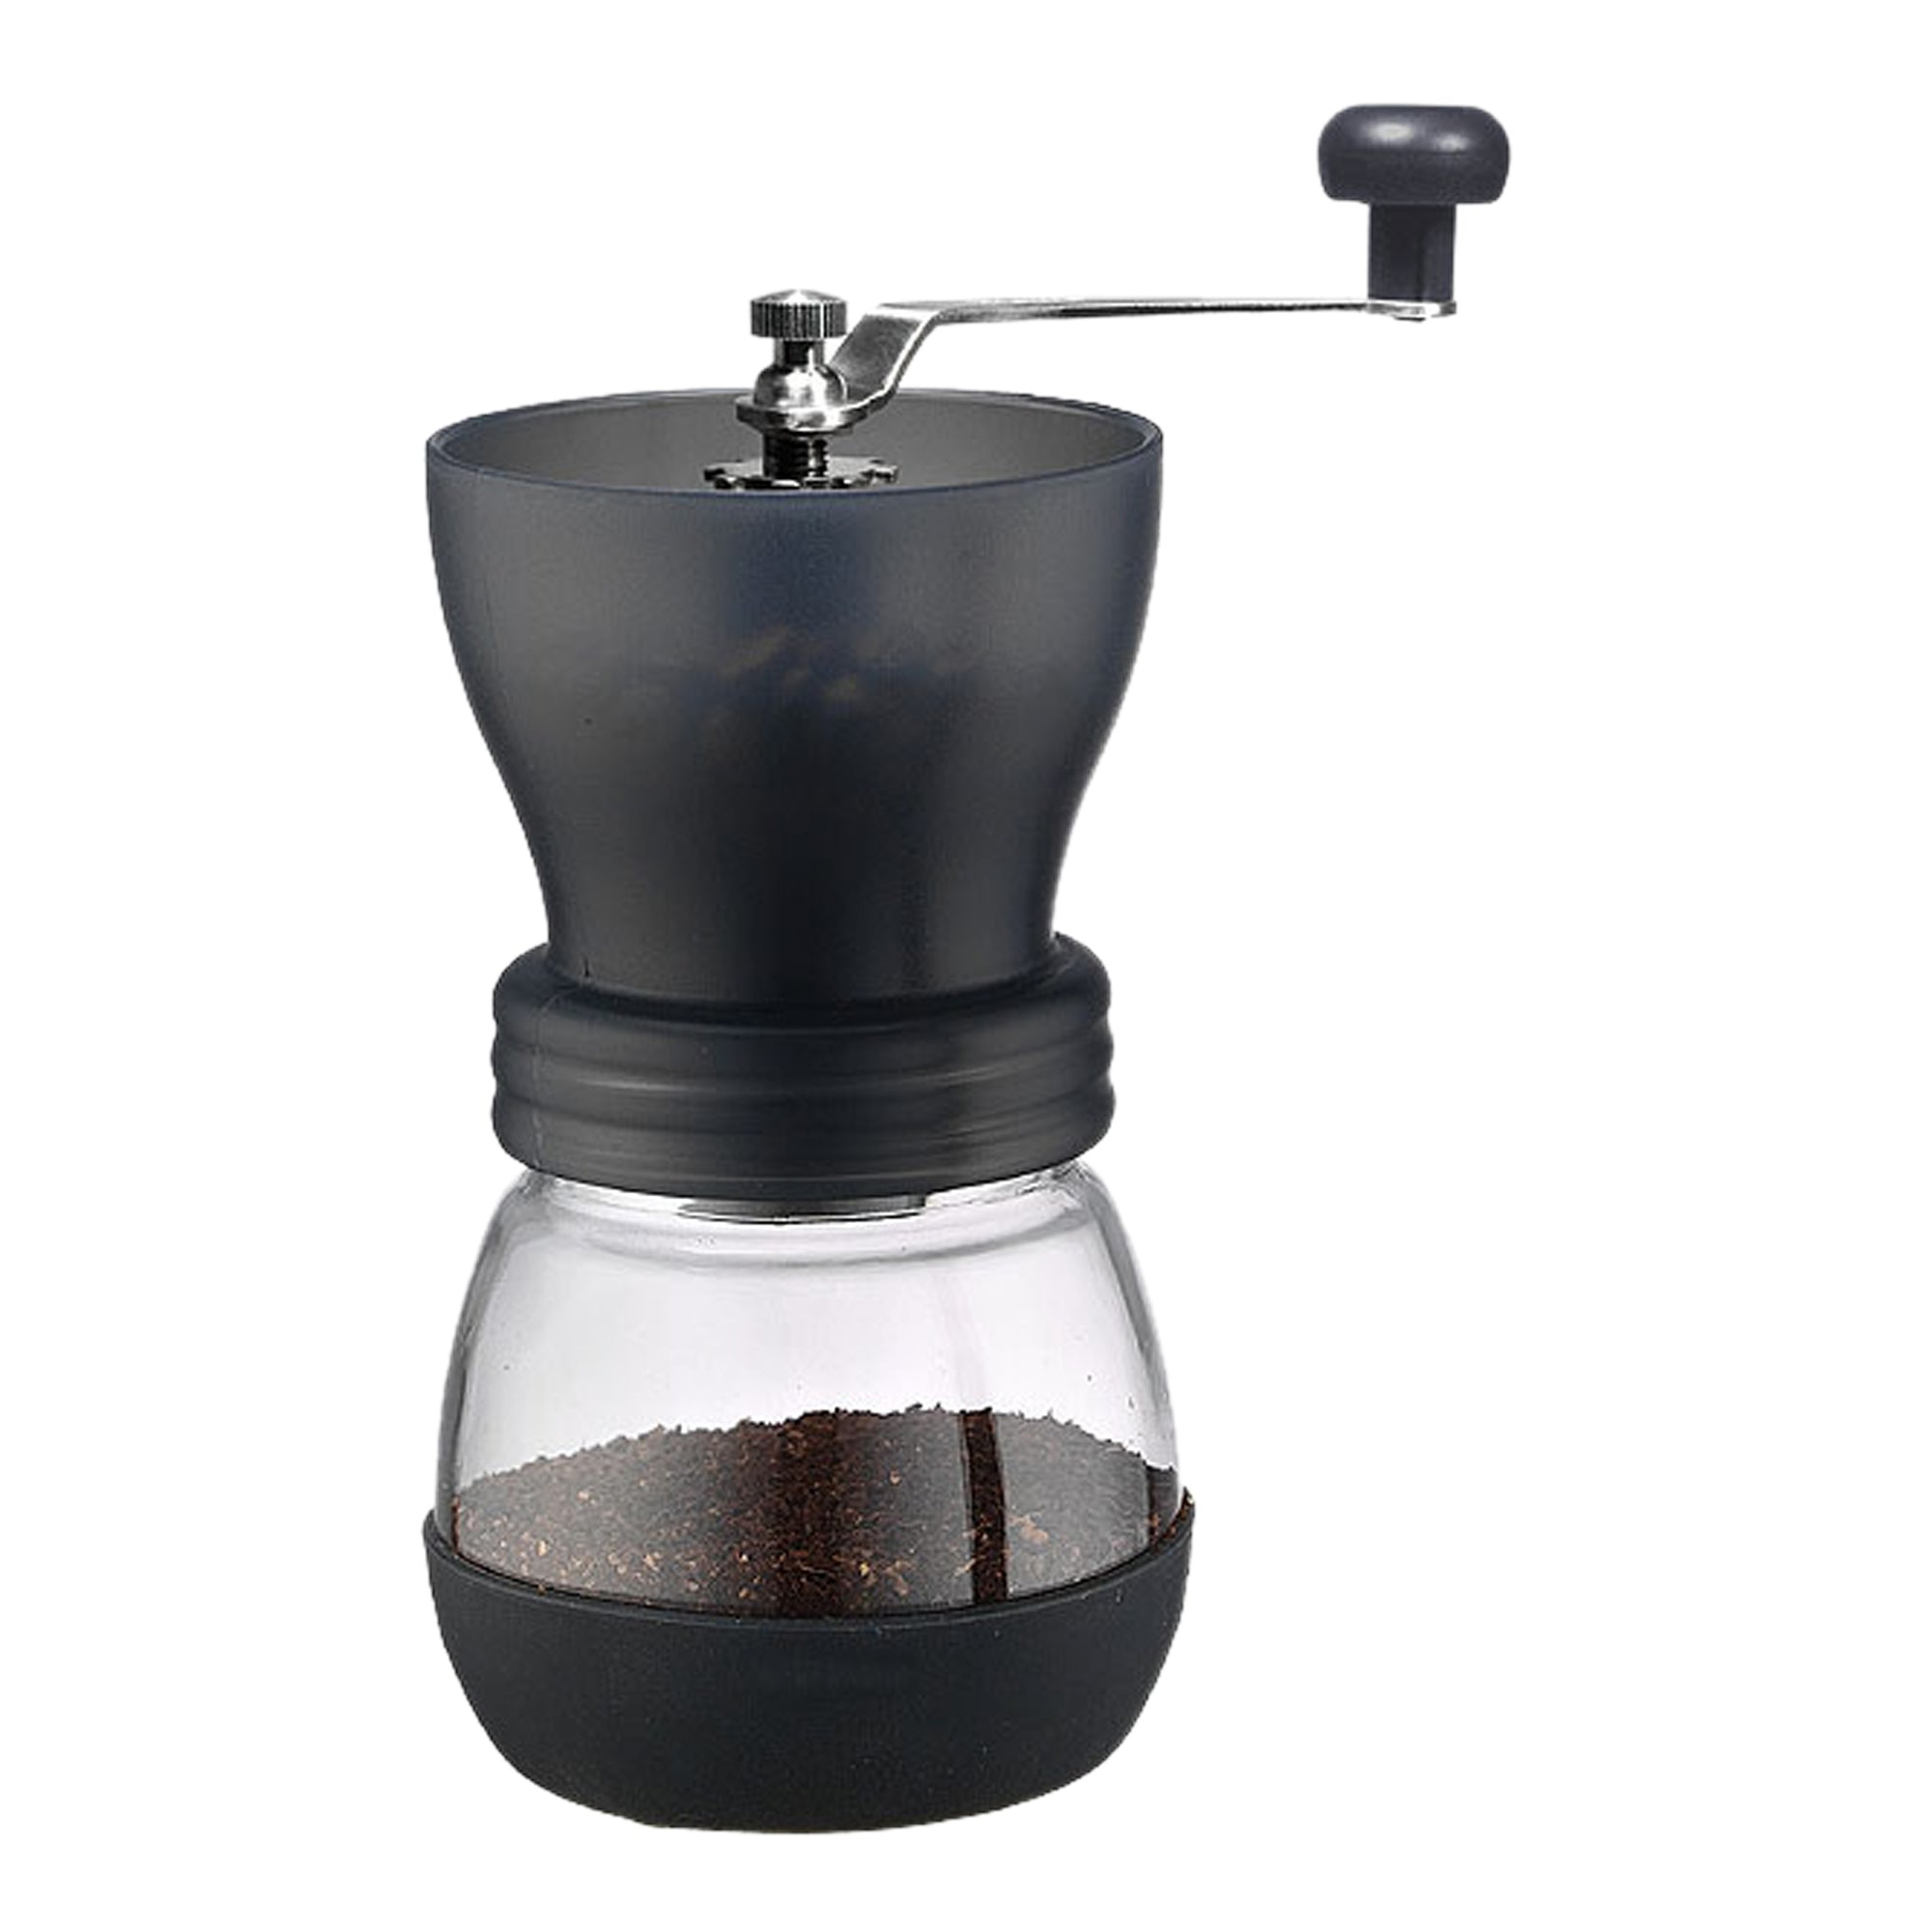 Tiamo Grinder Manual Fat black - Espresso Gear